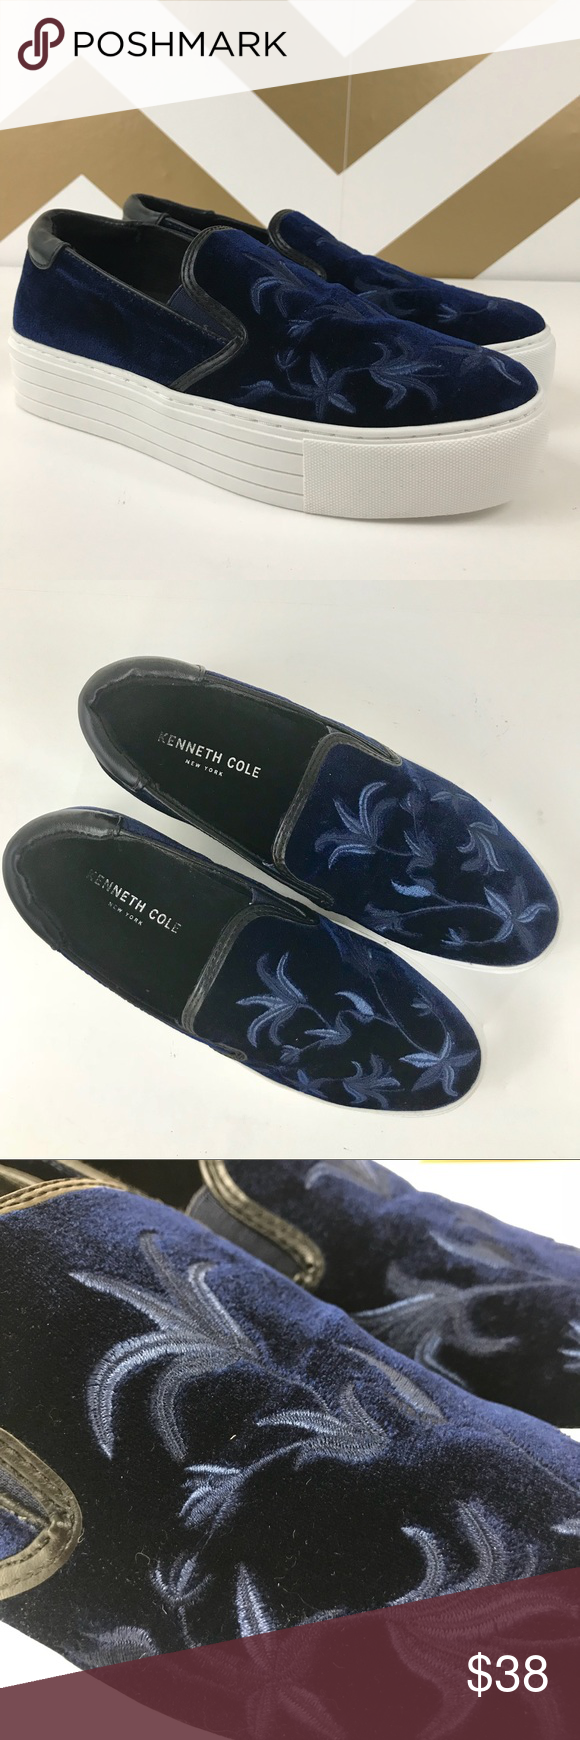 """3454518e0dd Kenneth Cole """"Alesy"""" Velvet Platform Sneakers-NWOT The perfect fashion  statement with jeans"""